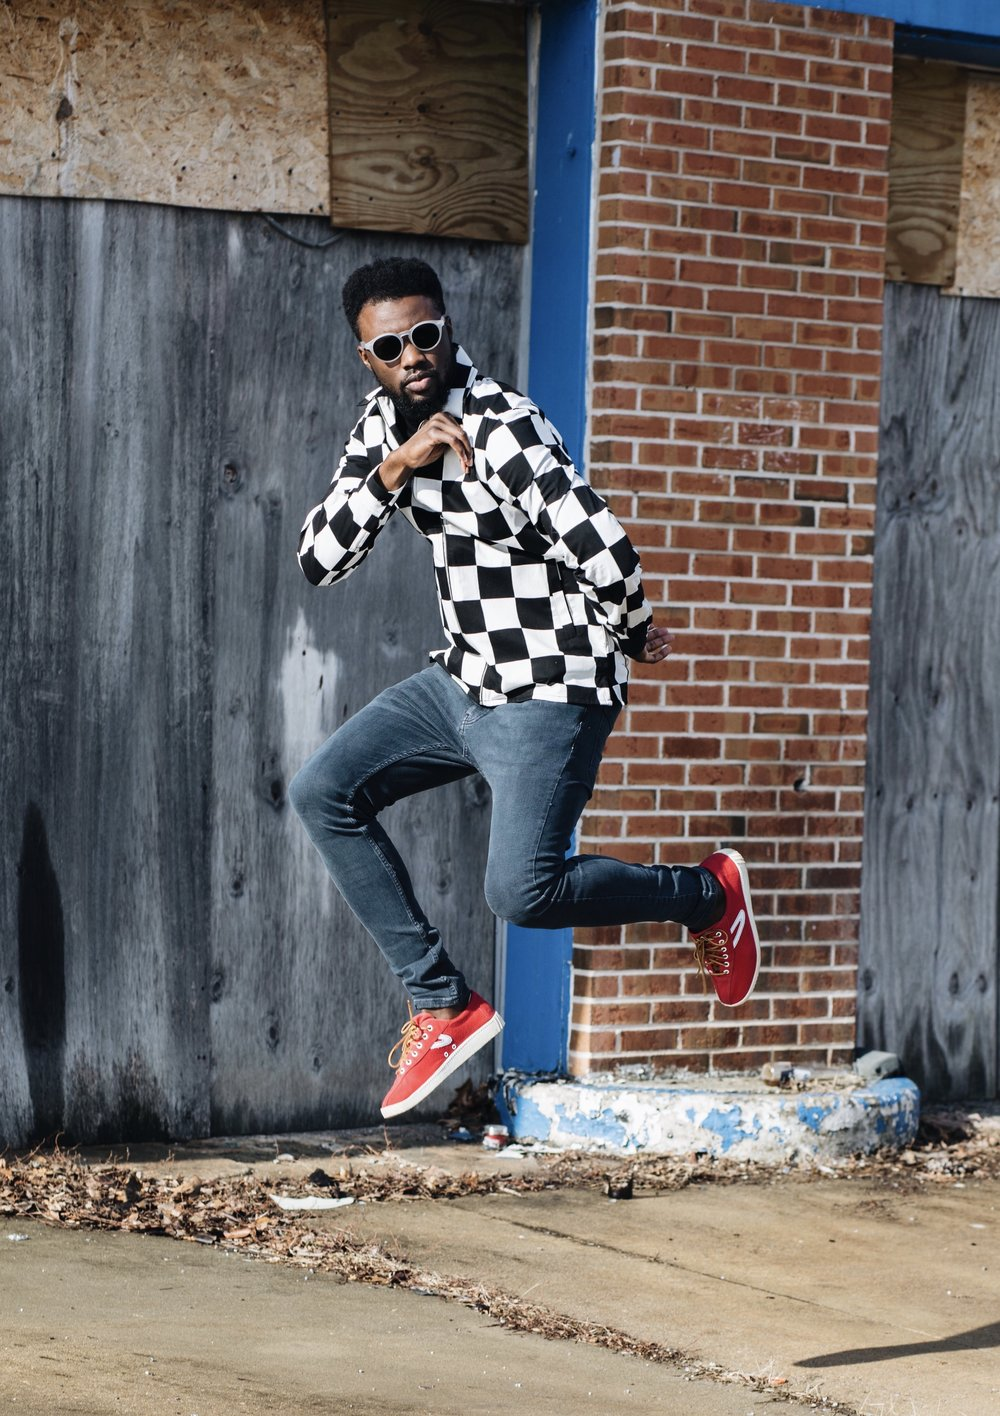 The Creative Gentleman is wearing blue Topman jeans, Topman black and white checkered shirt, red Tretorn Nylite sneakers, and sunglasses. The Creative Gentleman created this image as part of collaboration with Topman for their celebration of  being the destination for denim.